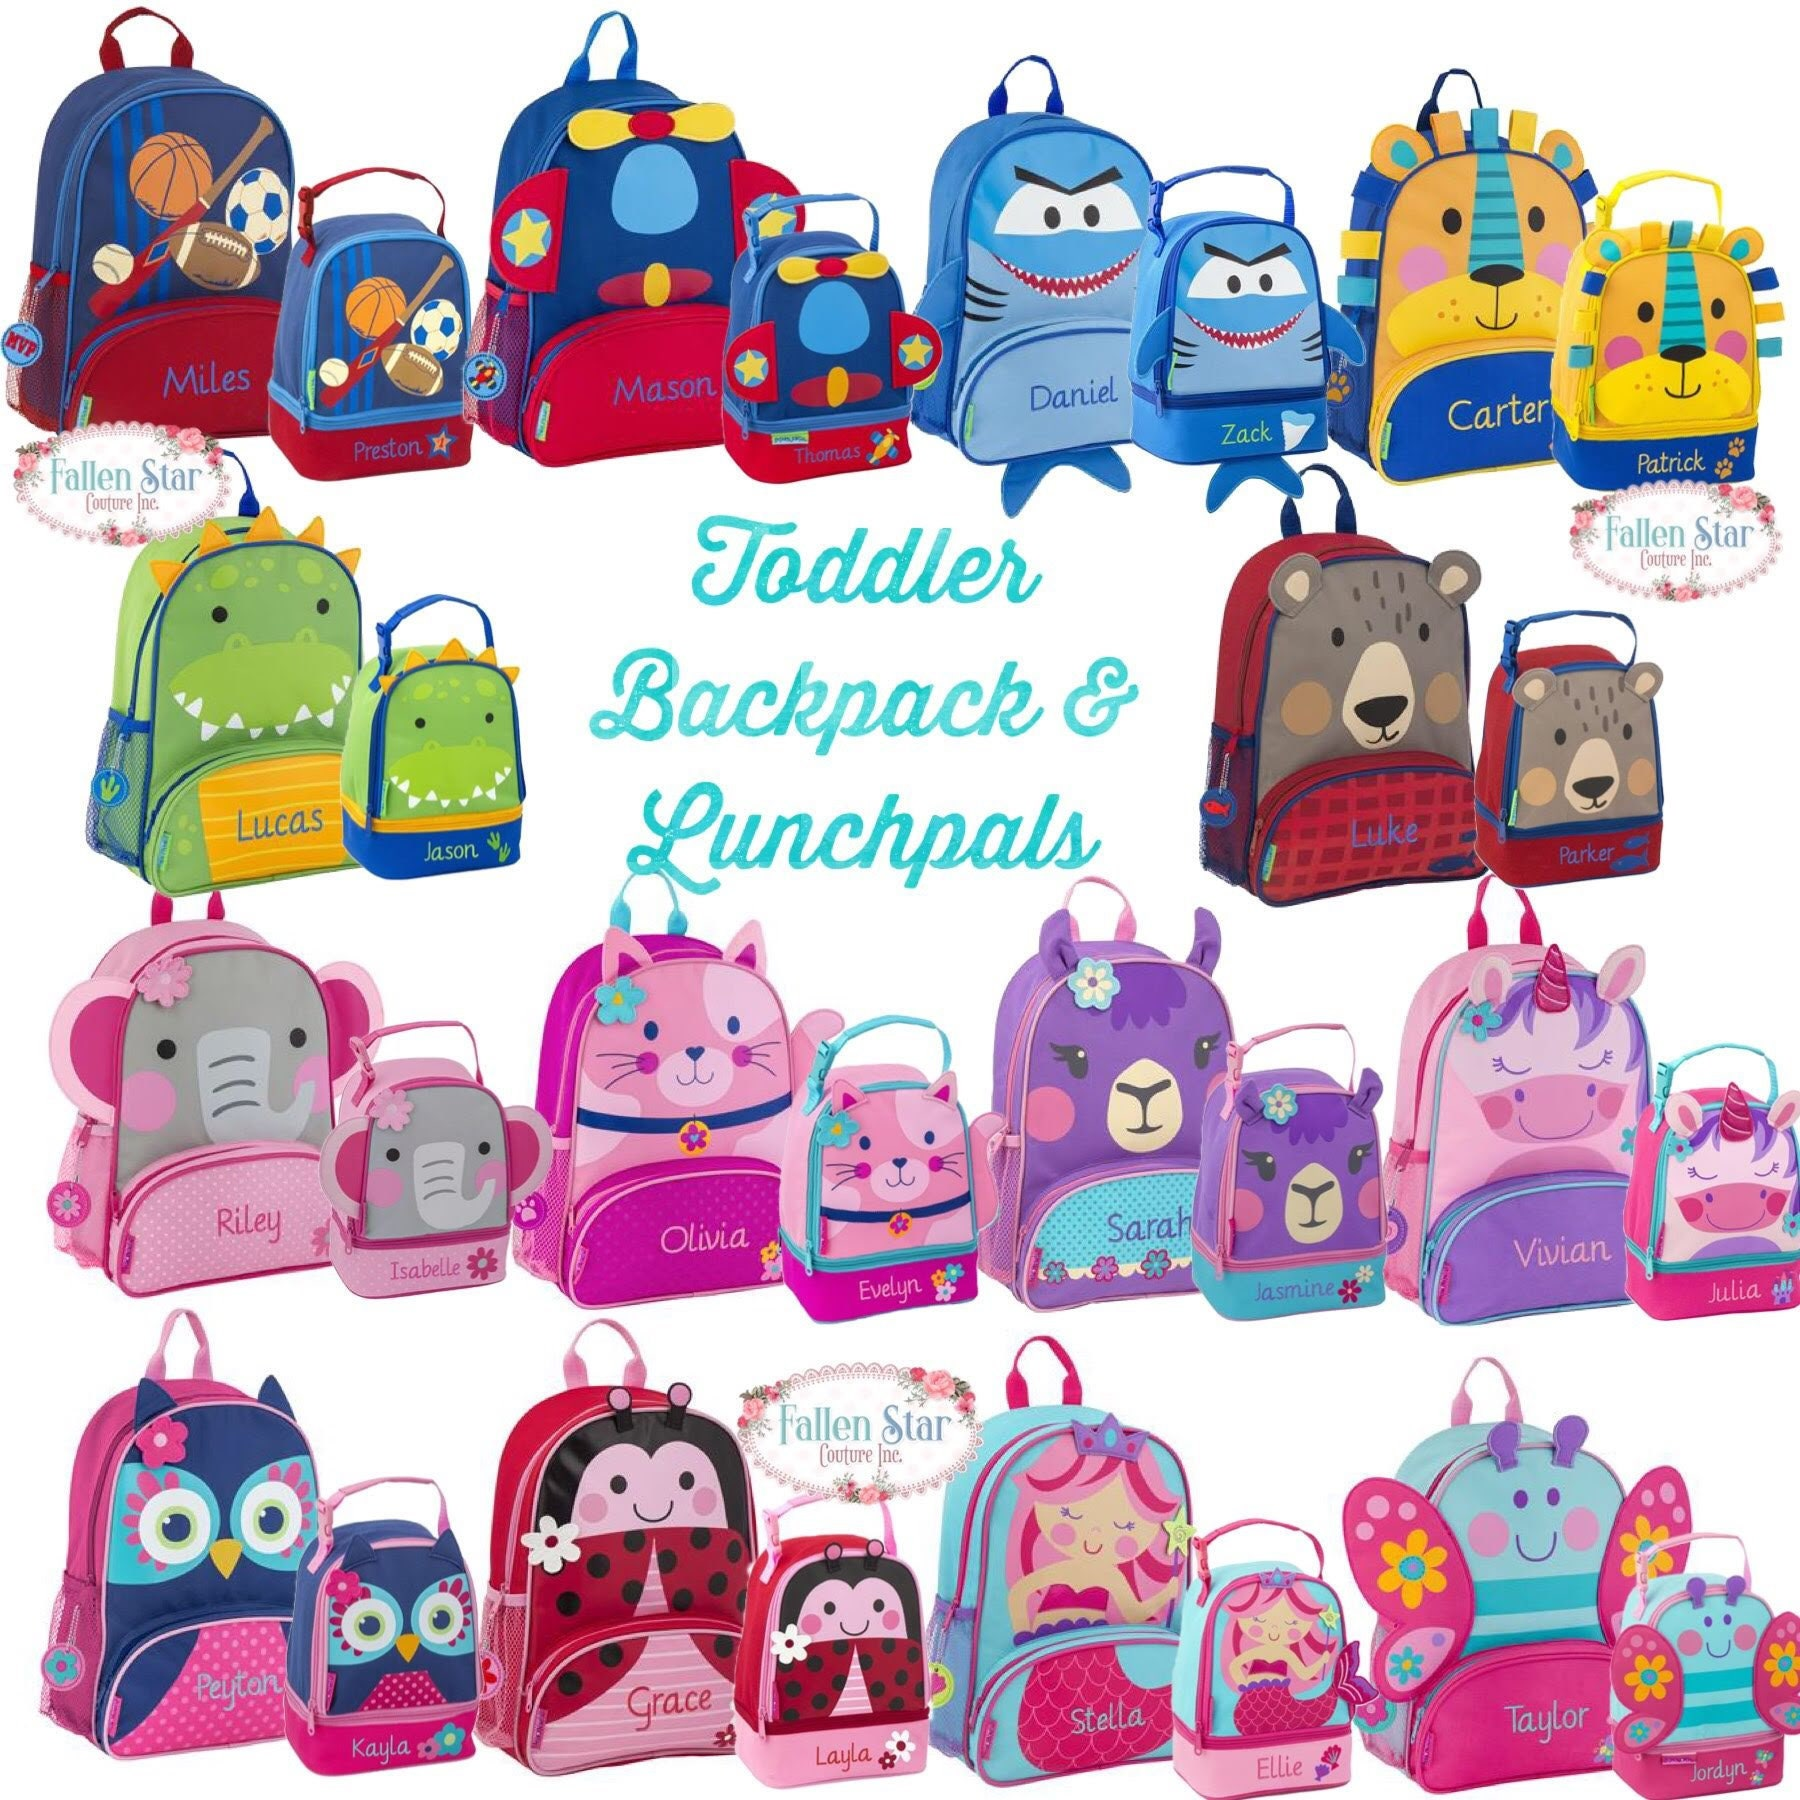 ff44ecd69c41 Toddler Backpack lunchbox Preschool Backpack Personalized Toddler Backpack  Stephen Joseph Unicorn Backpack Diaper Bag